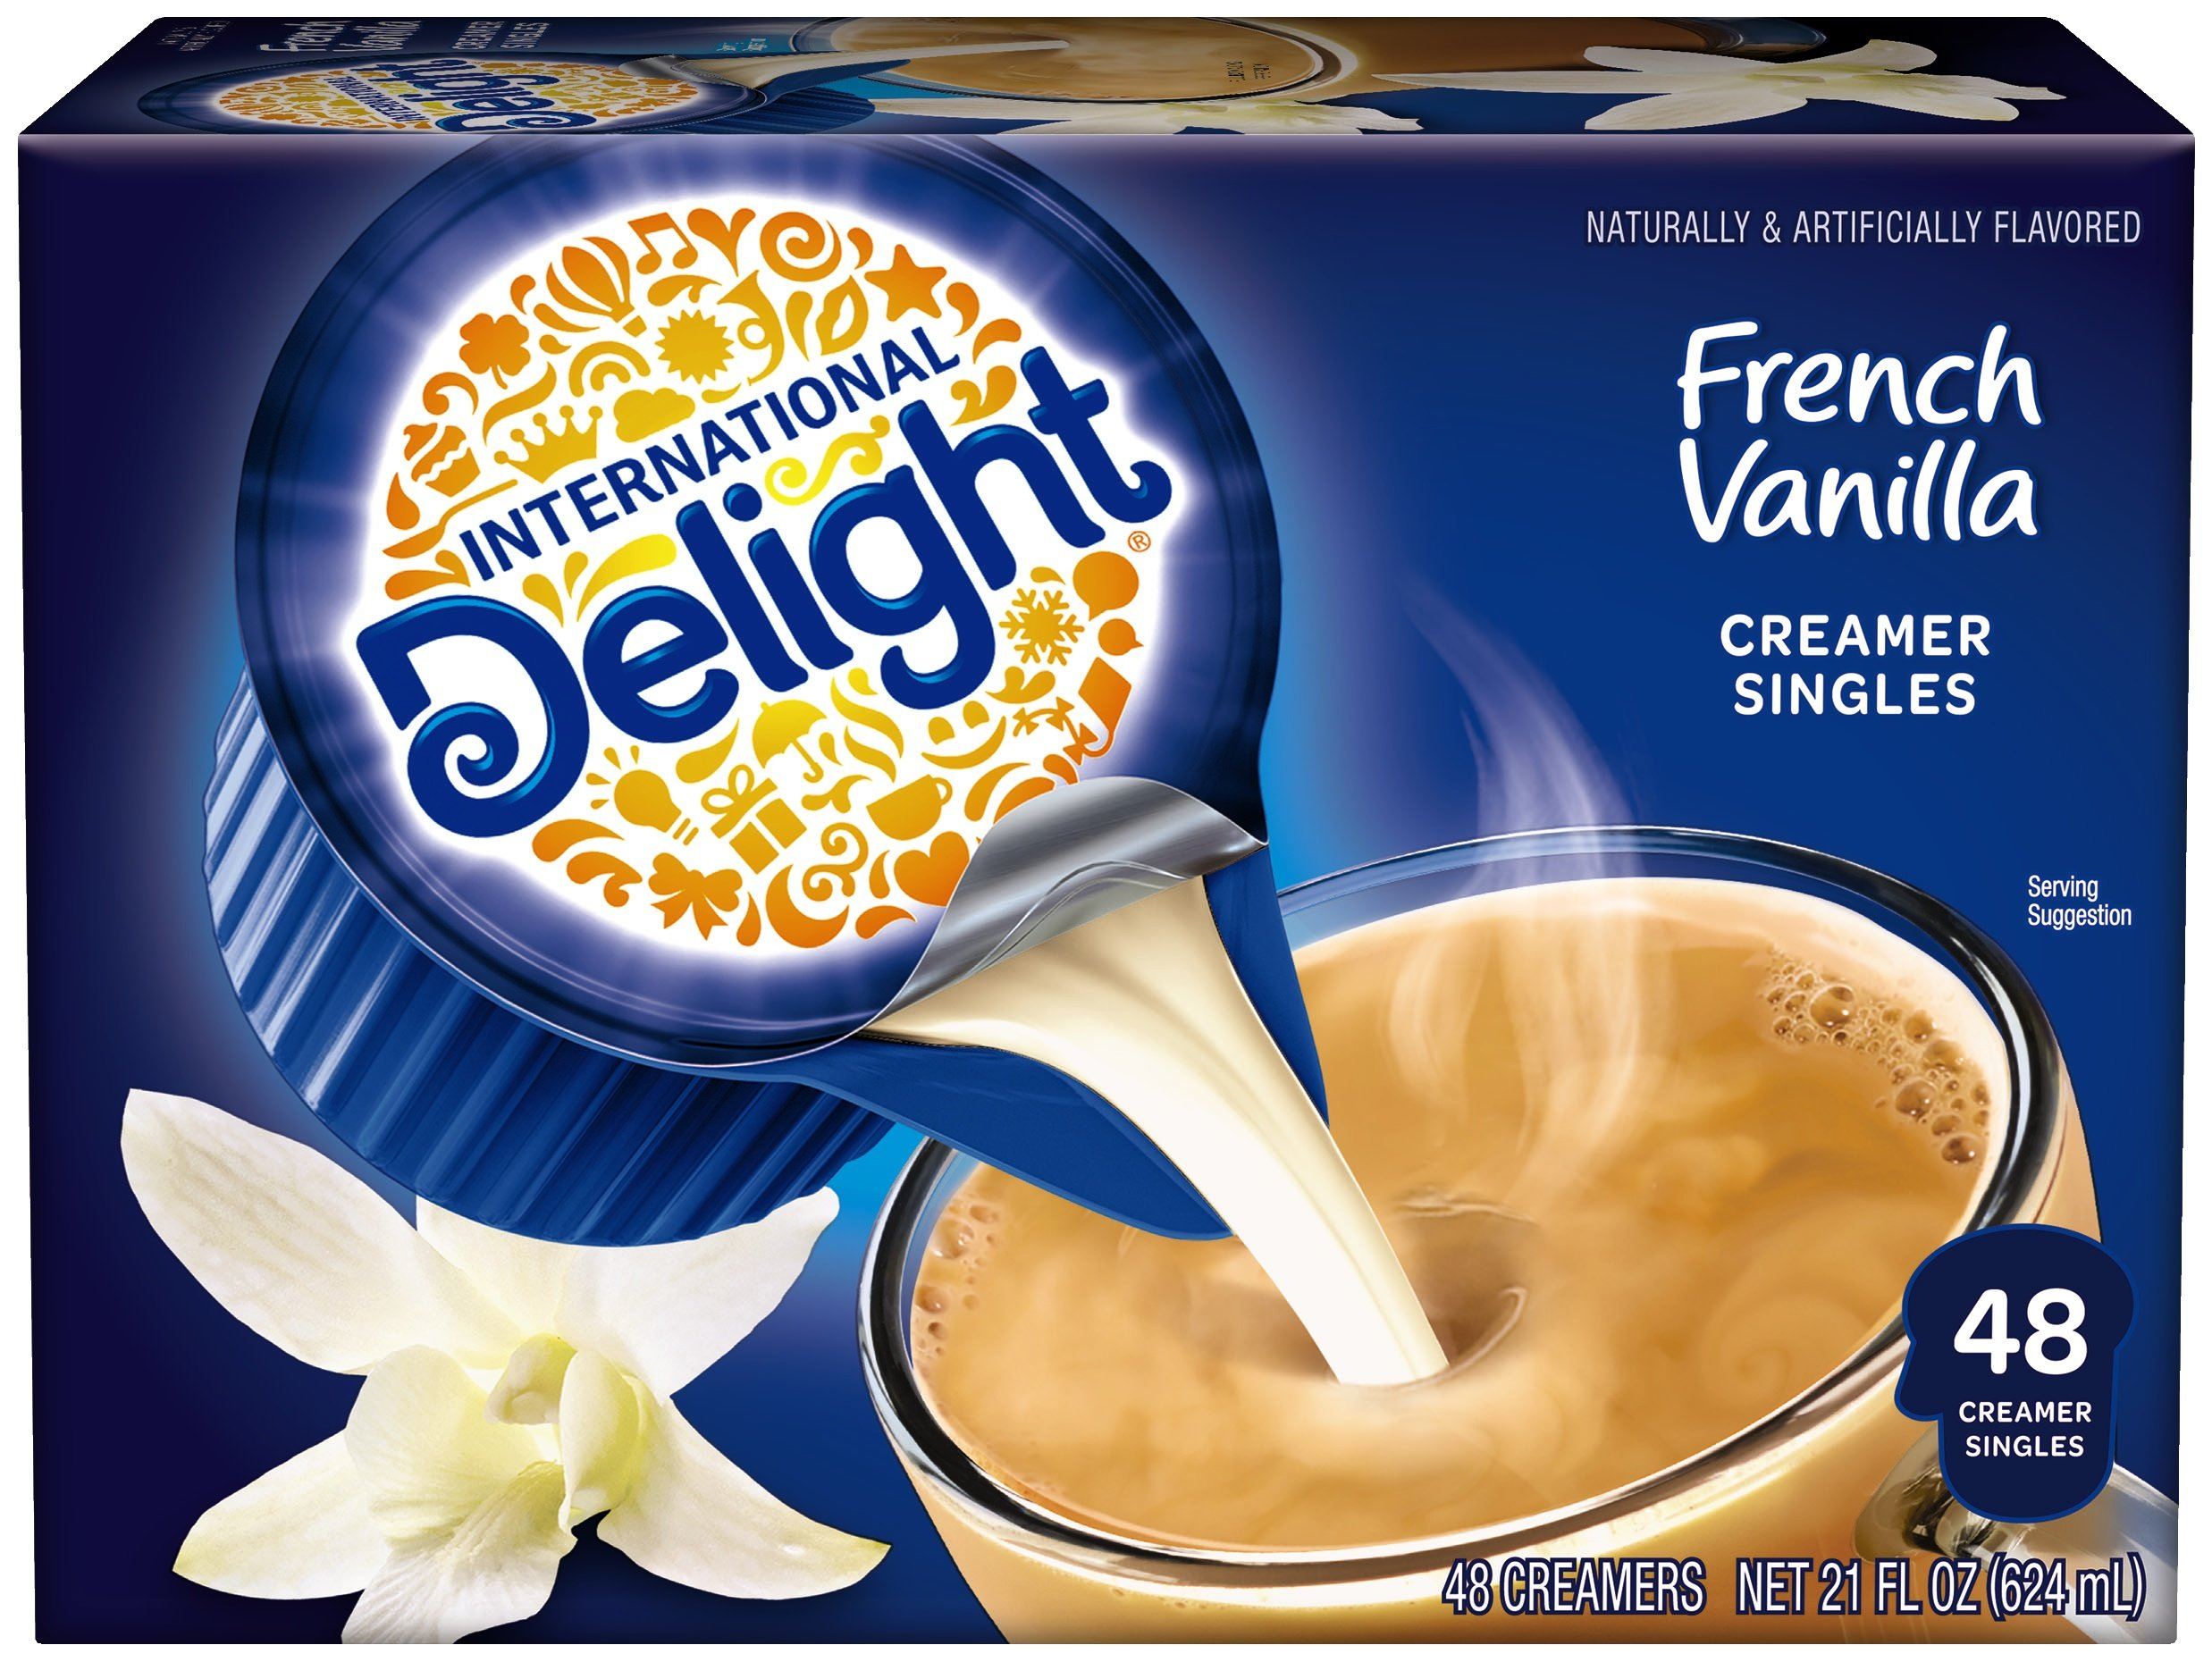 International Delight, French Vanilla, Single-Serve Coffee Creamers, 48 Count (Pack of 4), Shelf Stable Non-Dairy Flavored Coffee Creamer, Great for Home Use, Offices, Parties or Group Events